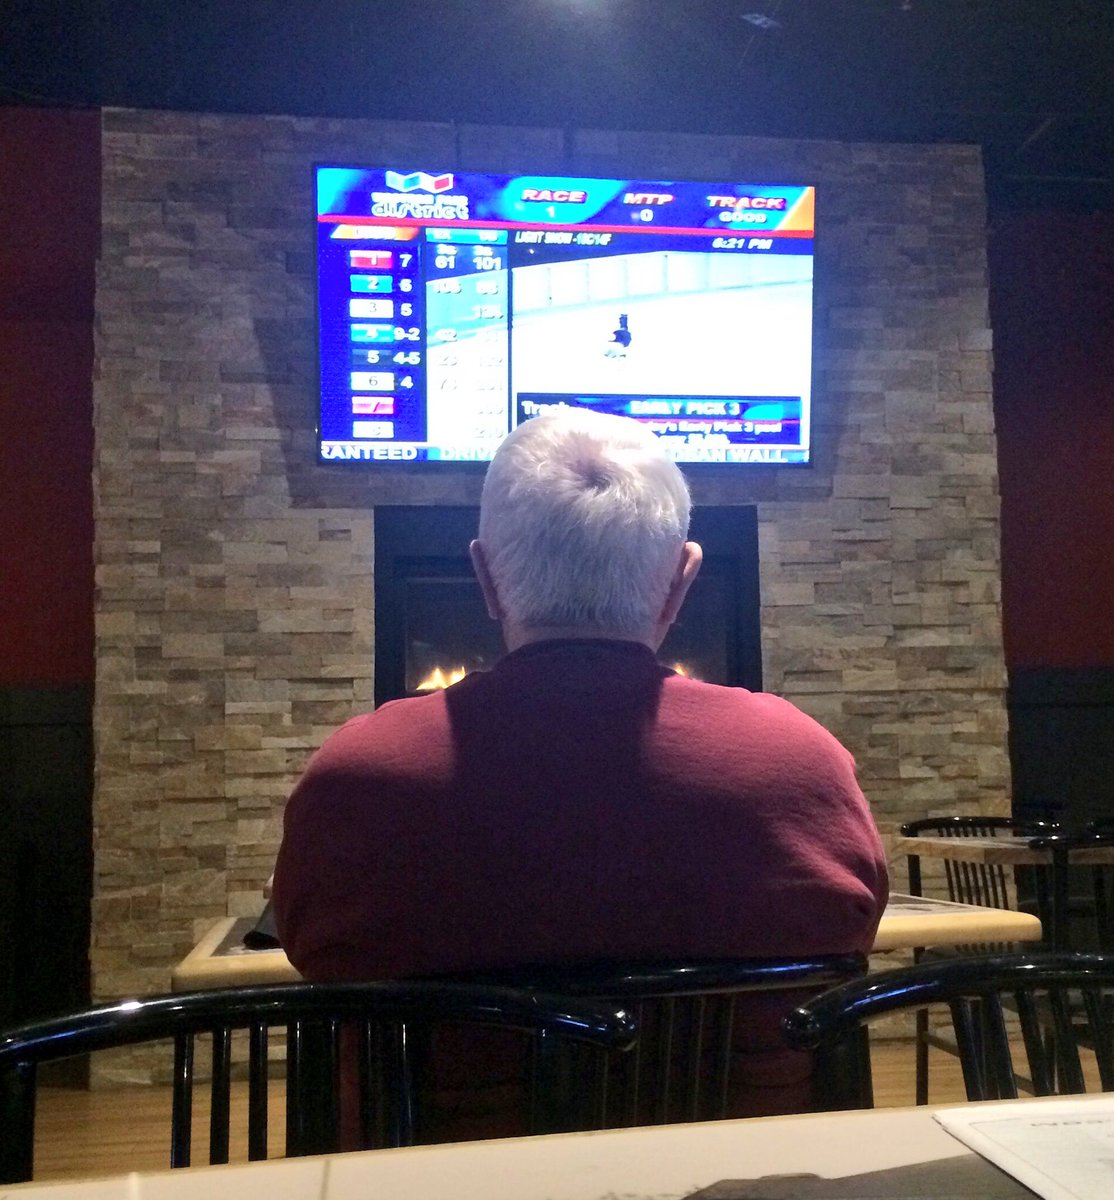 champions off track betting ontario